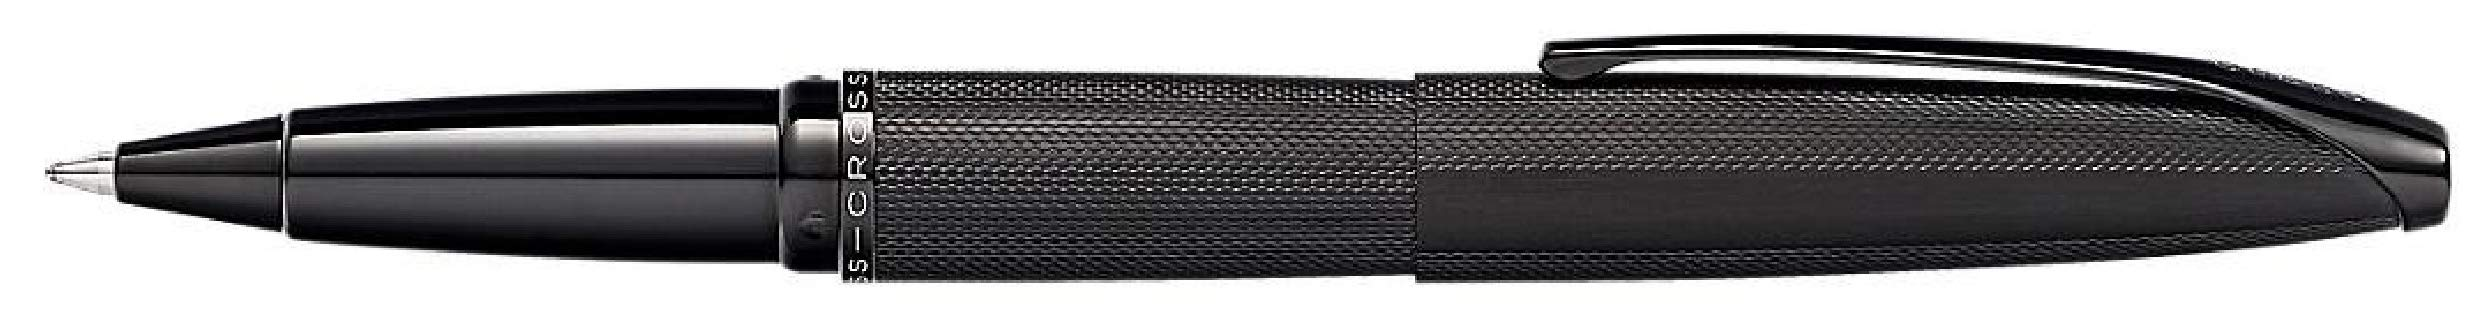 Cross ATX Brushed Black PVD Selectip Rollerball Pen with Etched Diamond Pattern by Cross (Image #3)